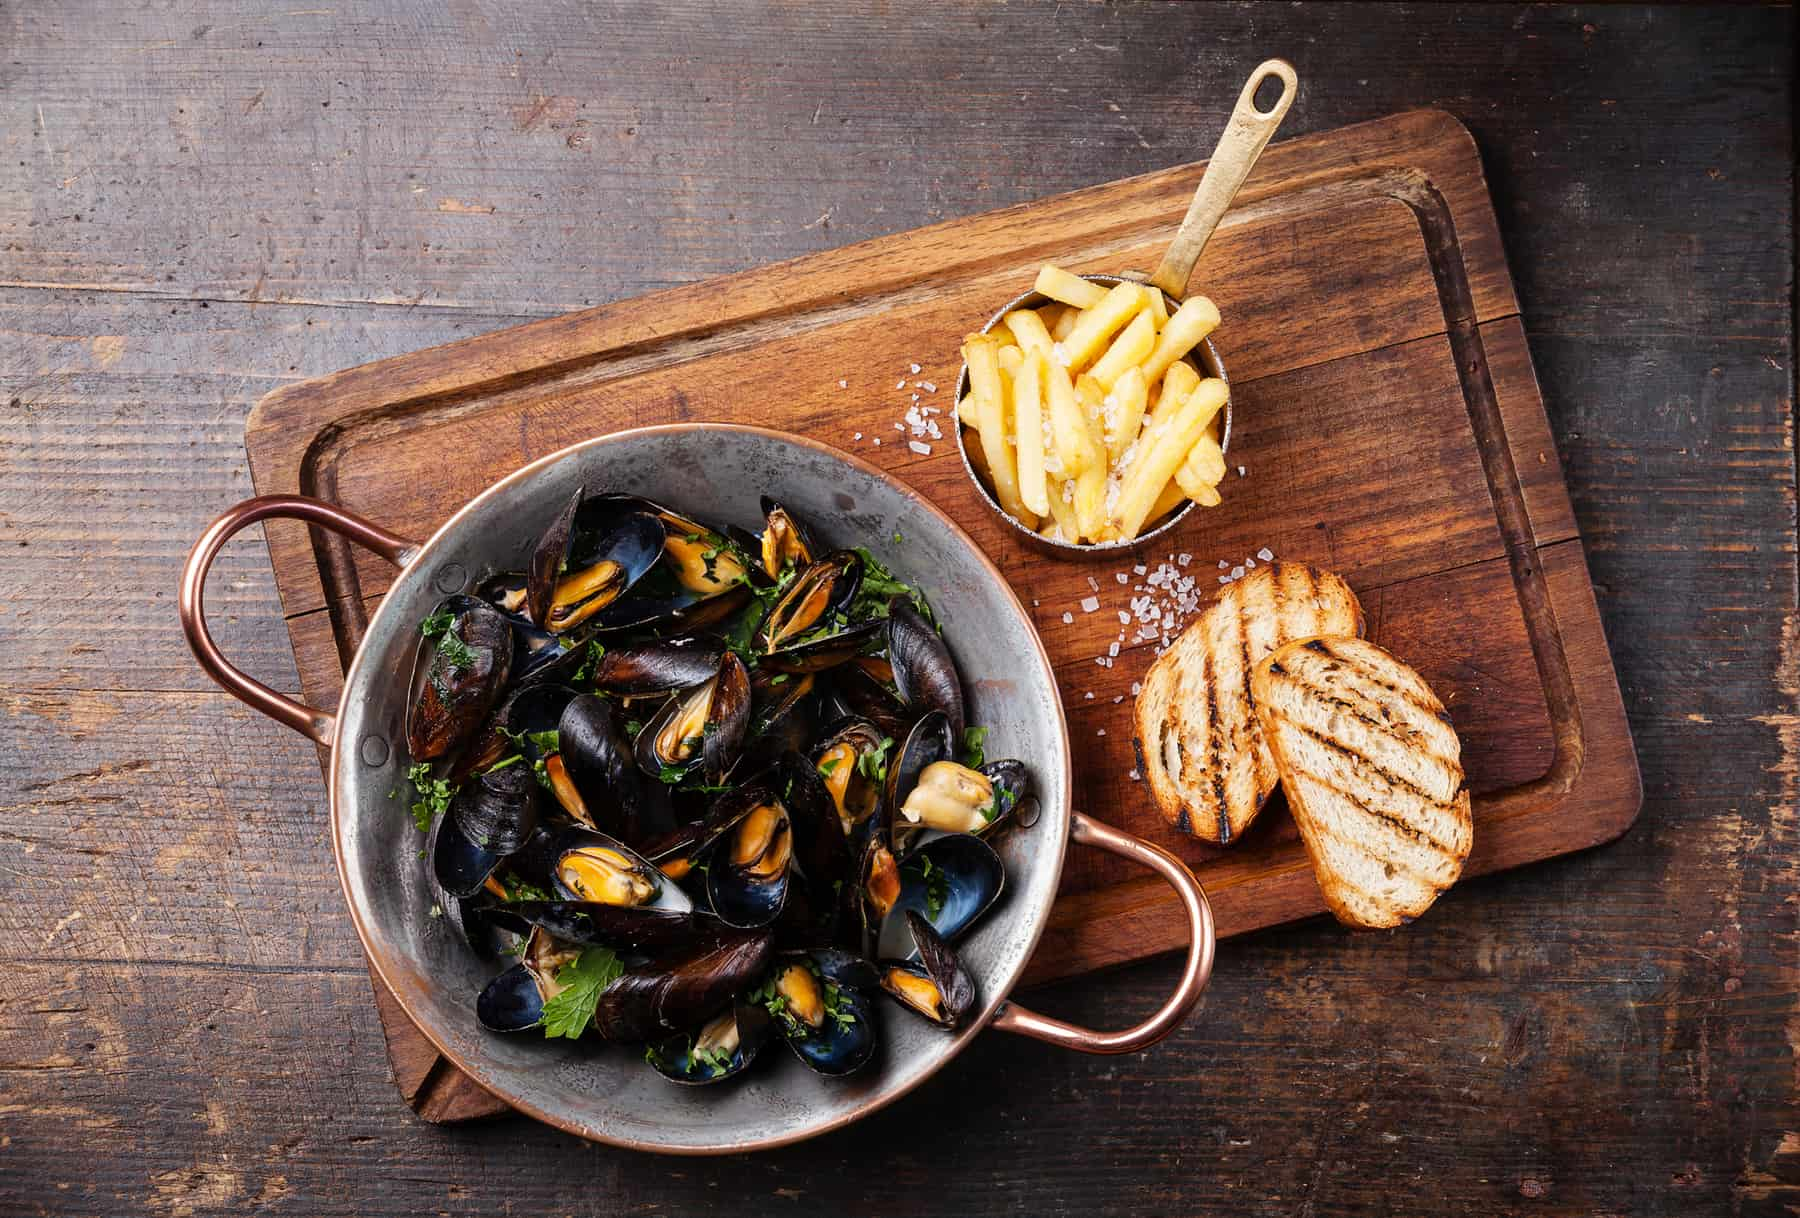 Mussels in a copper cooking dish. The side dish is very often french fries, here seen on a dark wooden background, French cuisine